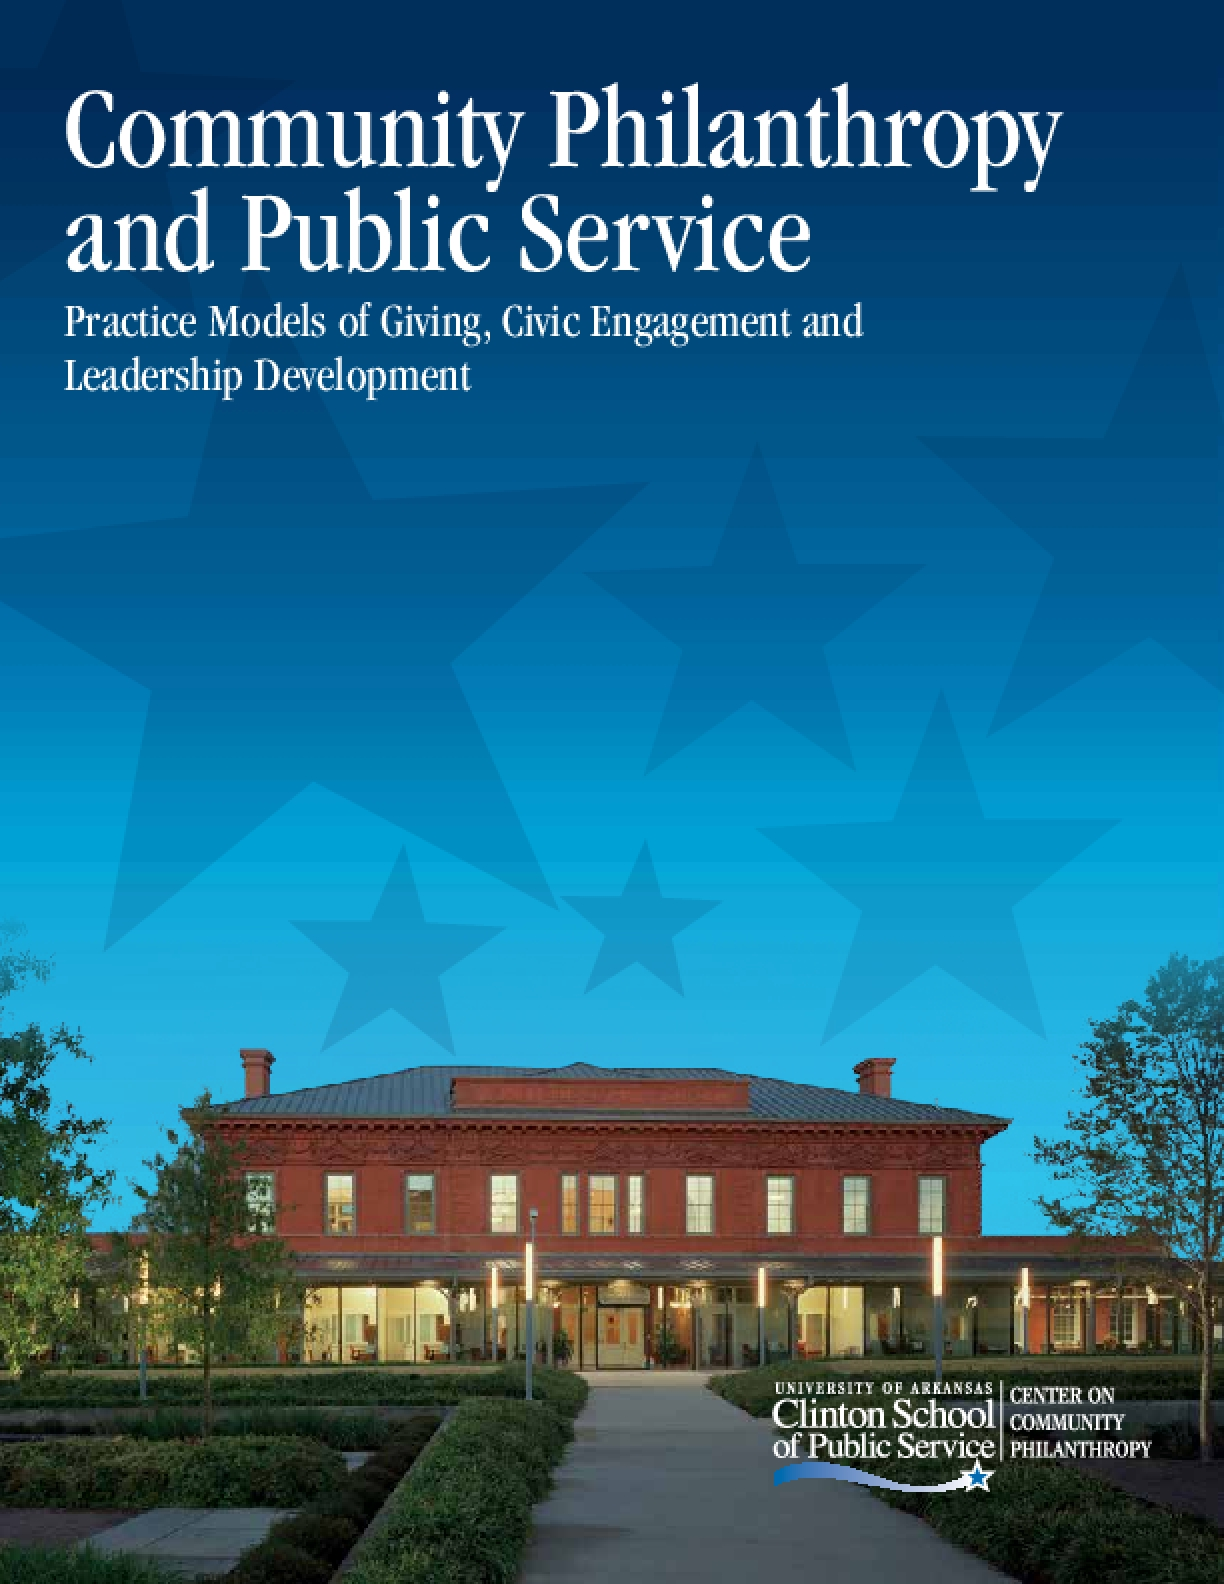 Community Philanthropy and Public Service: Practice Models of Giving, Civic Engagement and Leadership Development